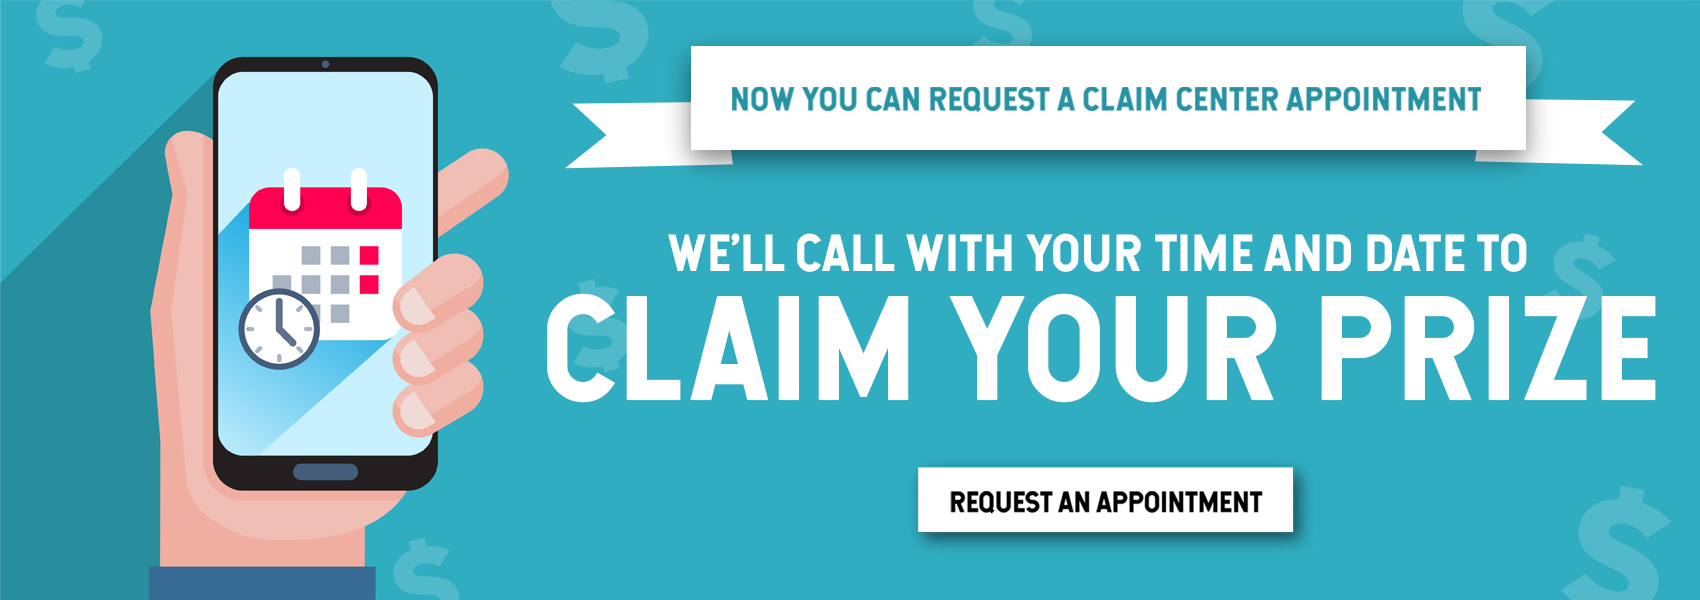 Request a Claim Appointment. In order to claim your prize at a Claim Center, you will need to fill out the Request a Claim Appointment form and a Claims Specialist will contact you to set an appointment.